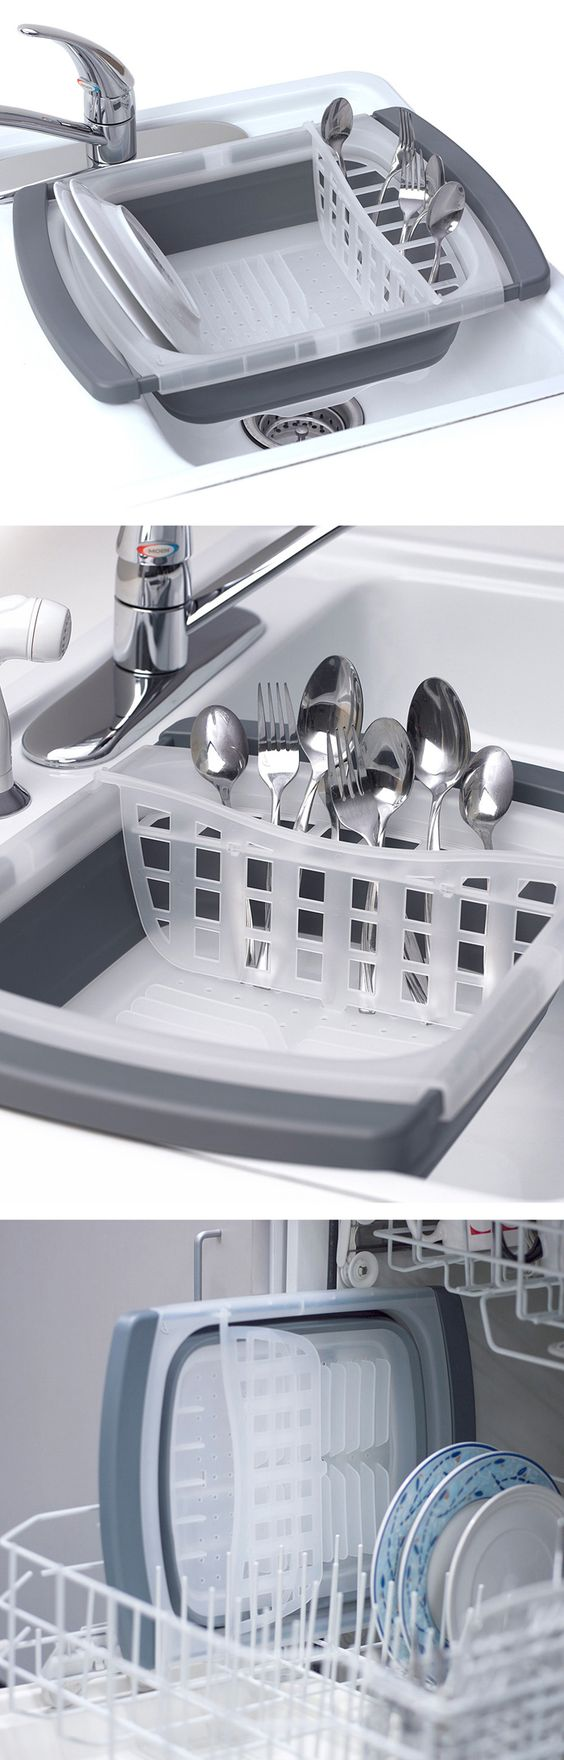 Collapsible Over The Sink Dish Drainer Saves Space